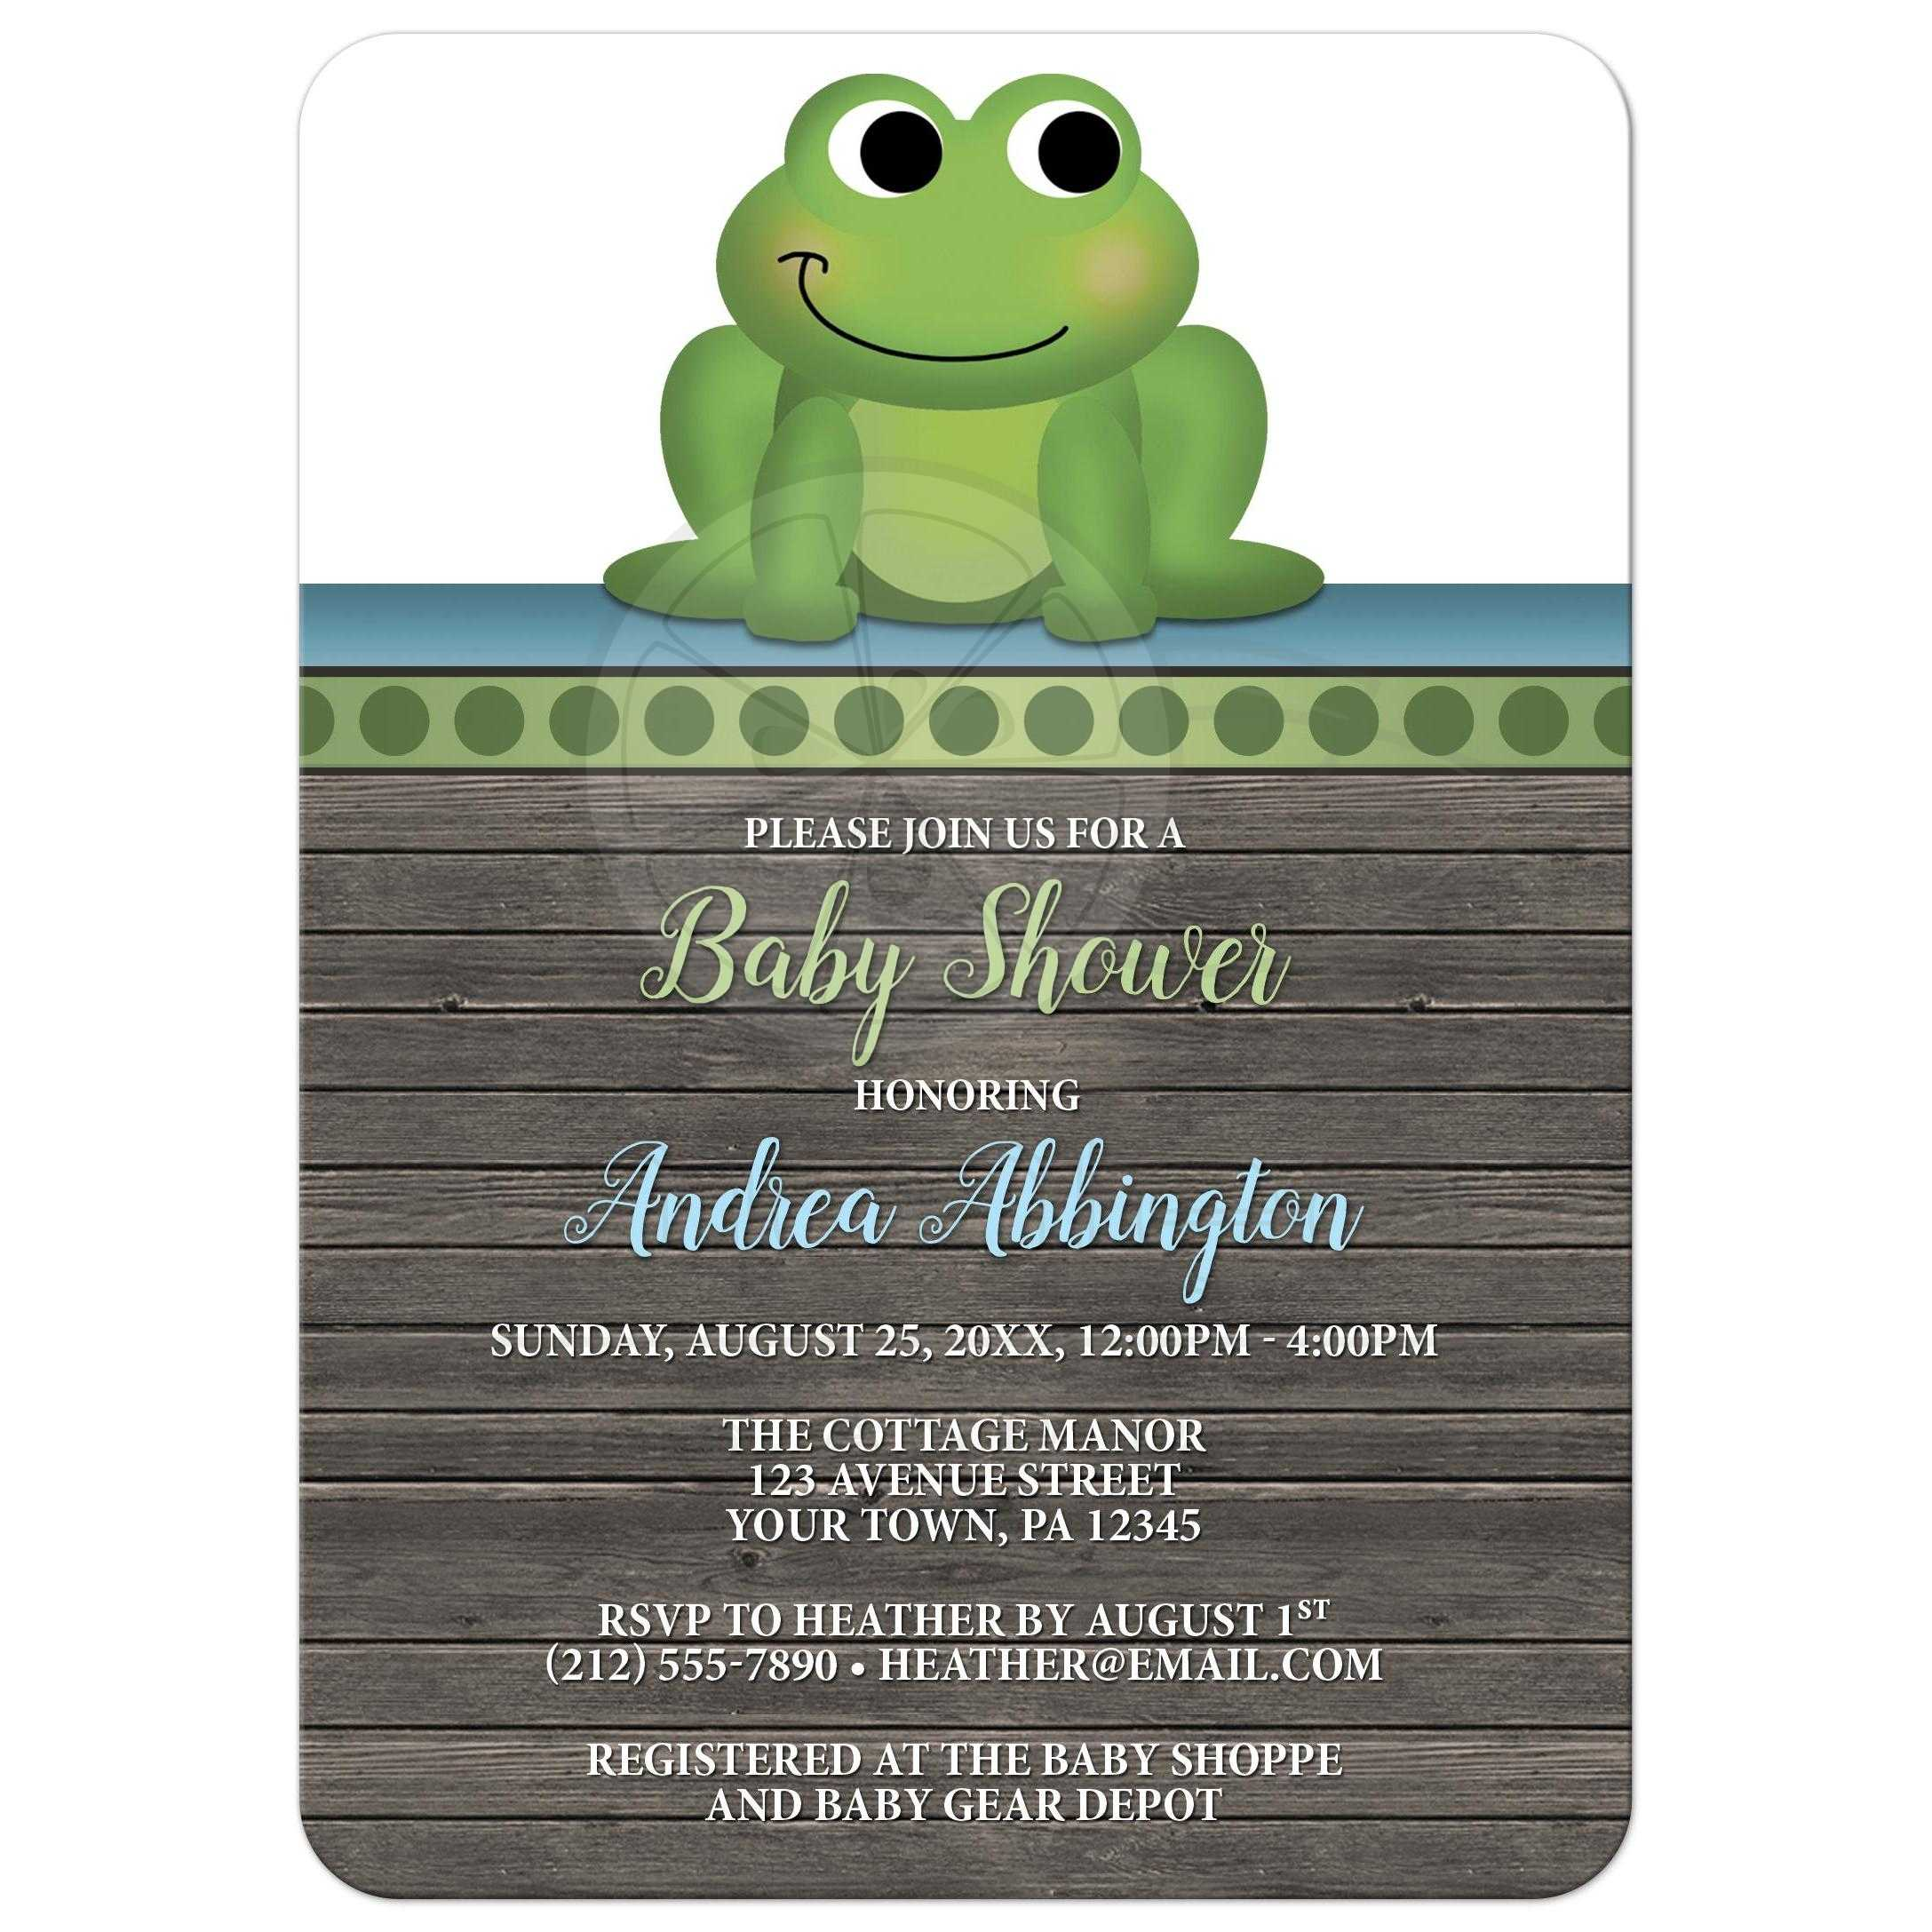 rustic baby shower invitations orionjurinform com